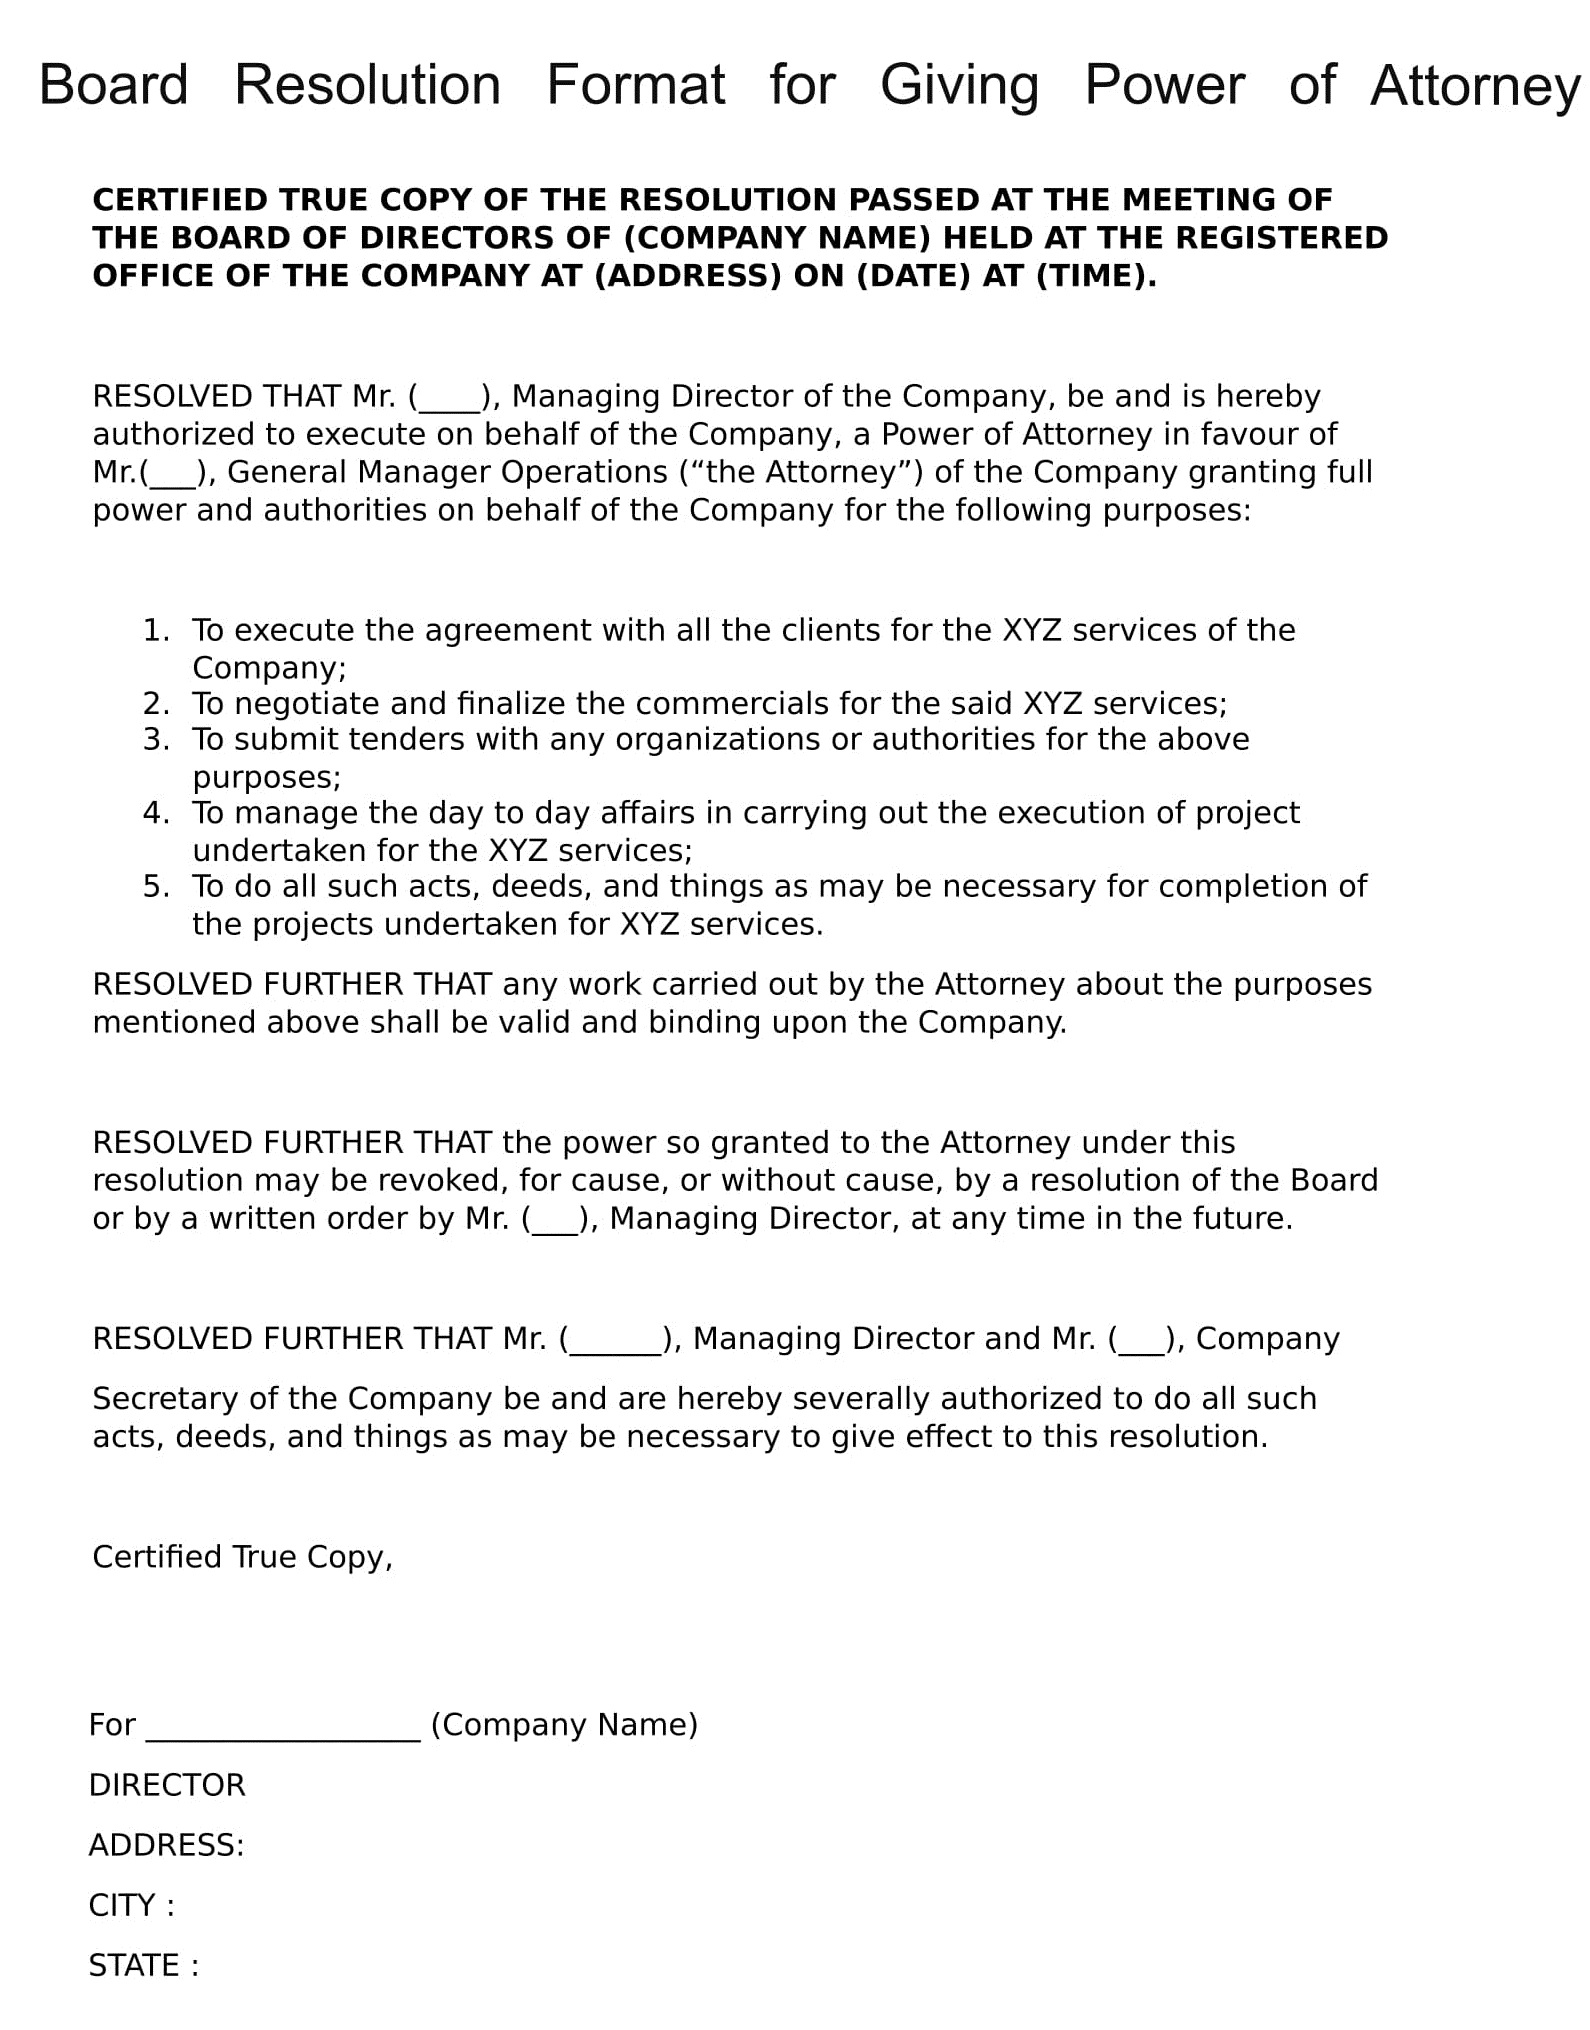 Board Resolution Format for Giving Power of Attorney-1.jpg